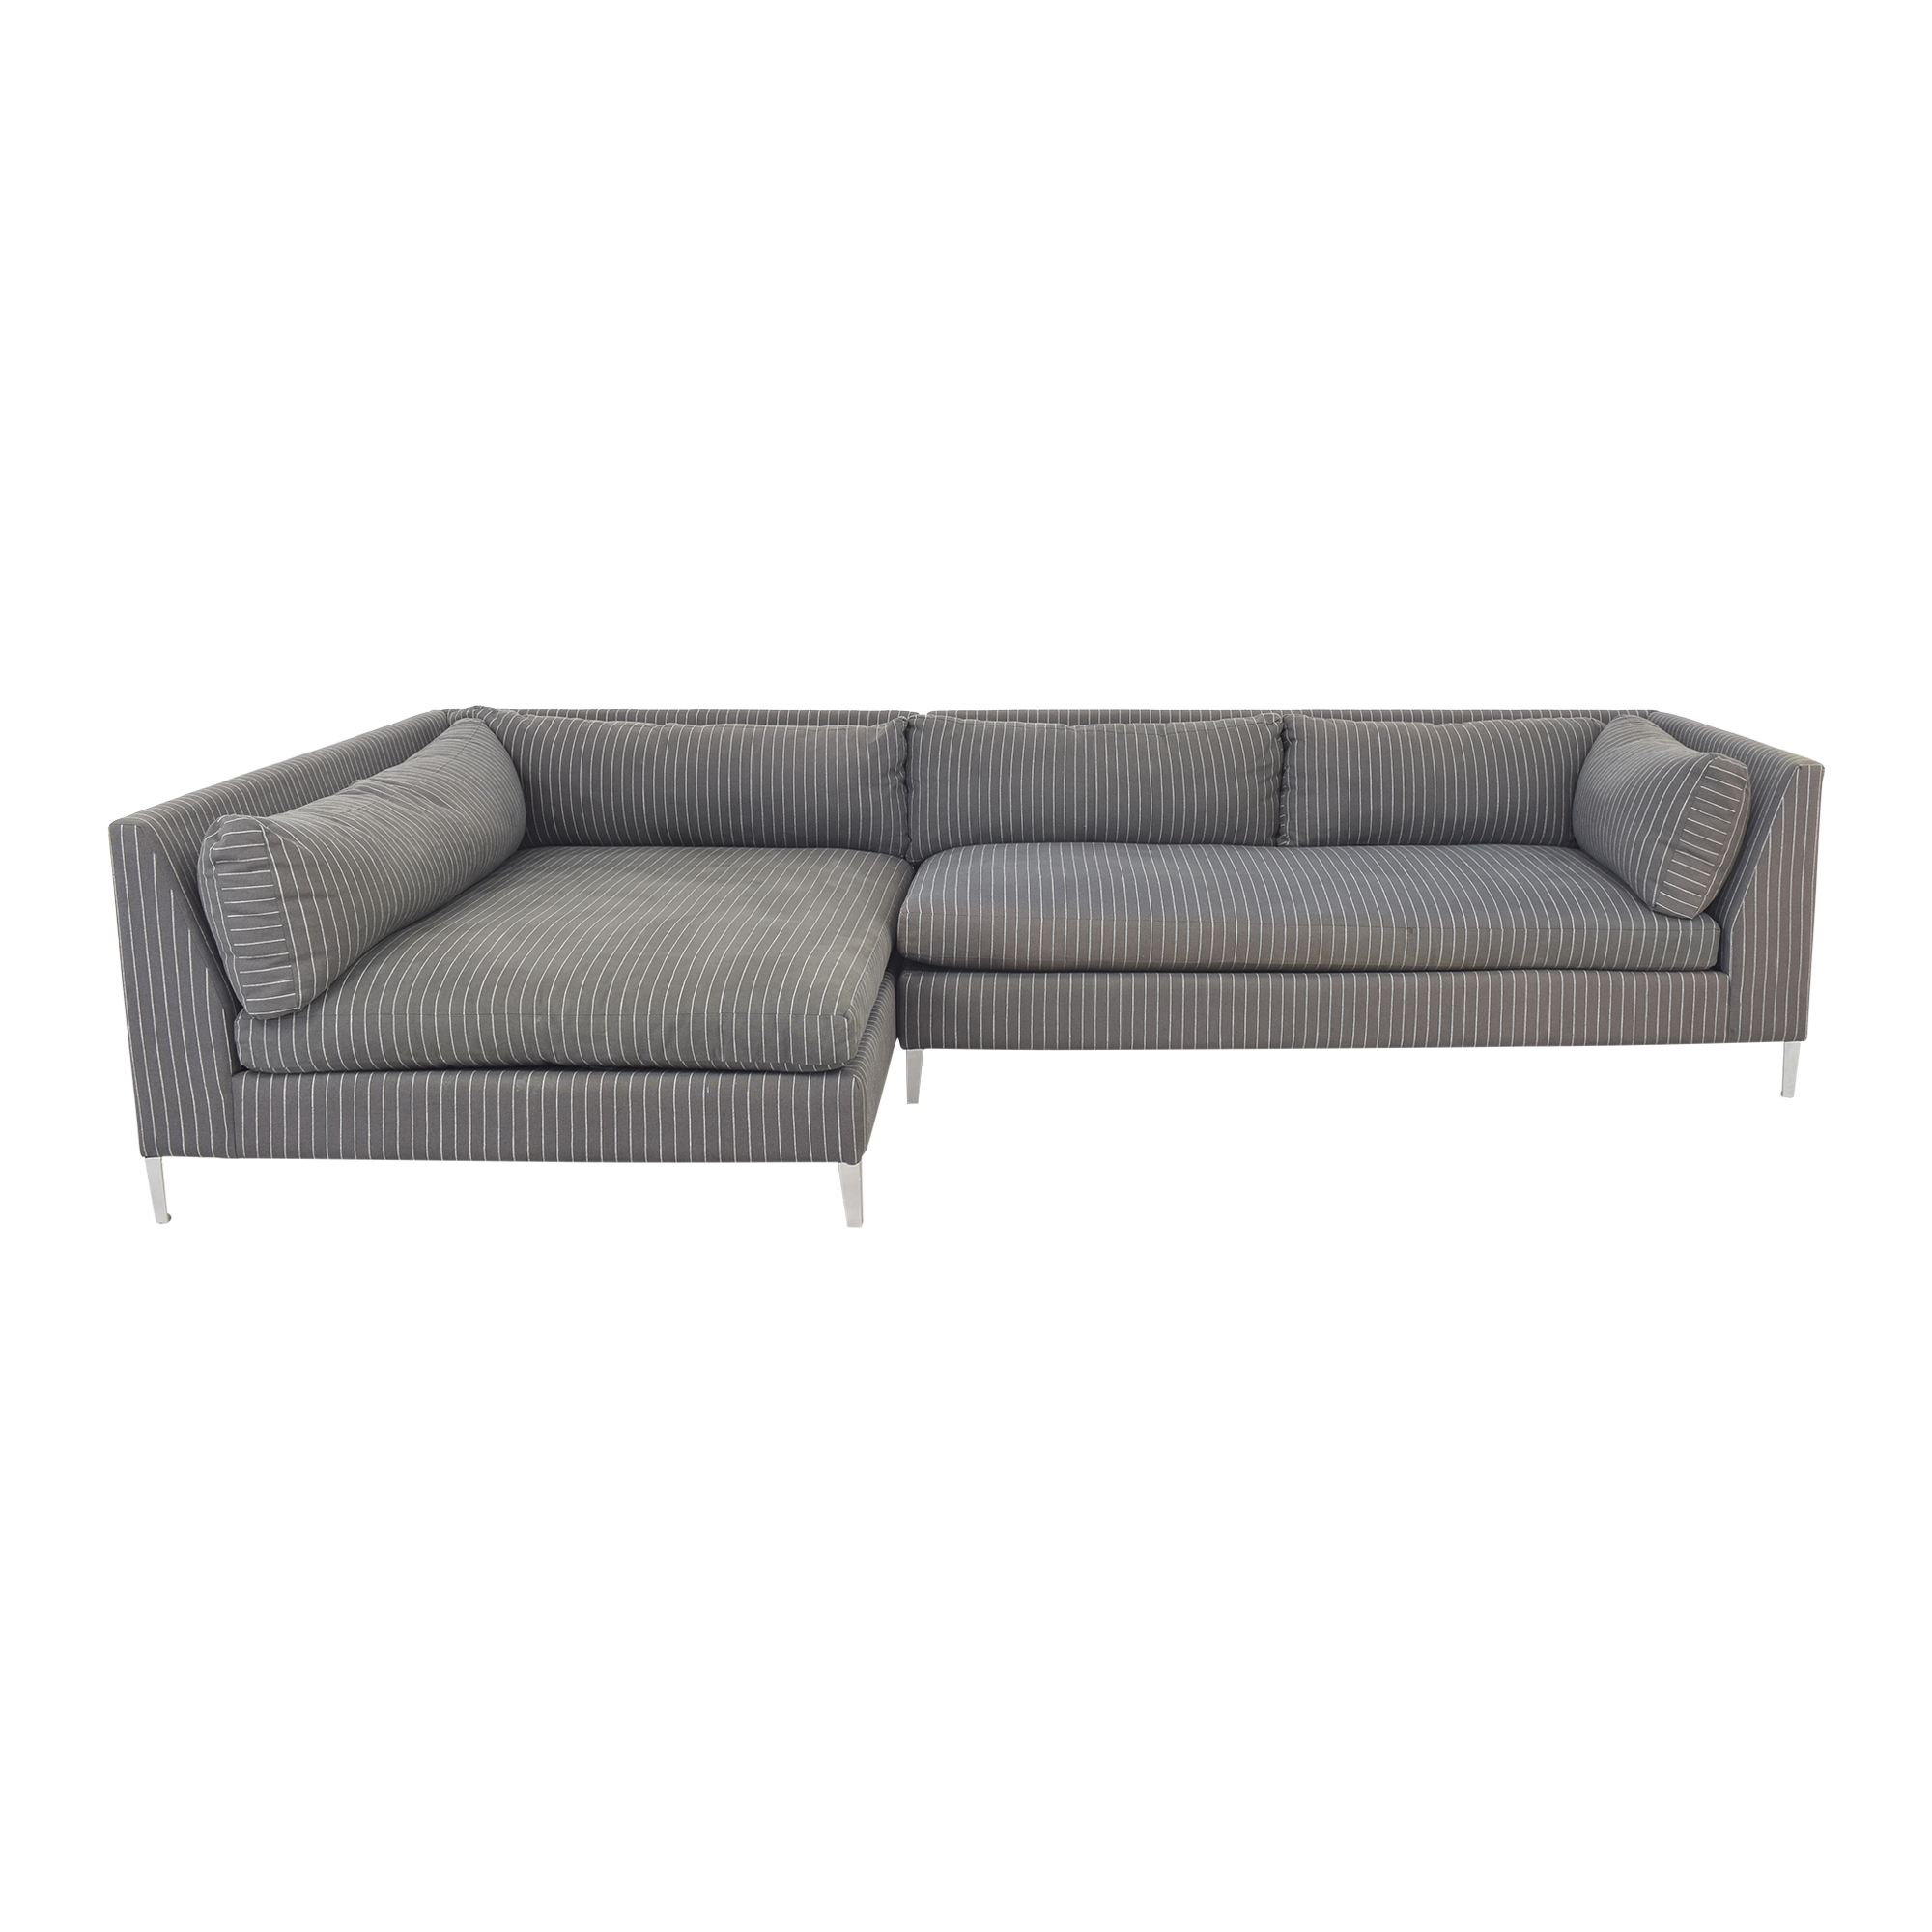 CB2 CB2 Decker Two Piece Sectional Sofa for sale